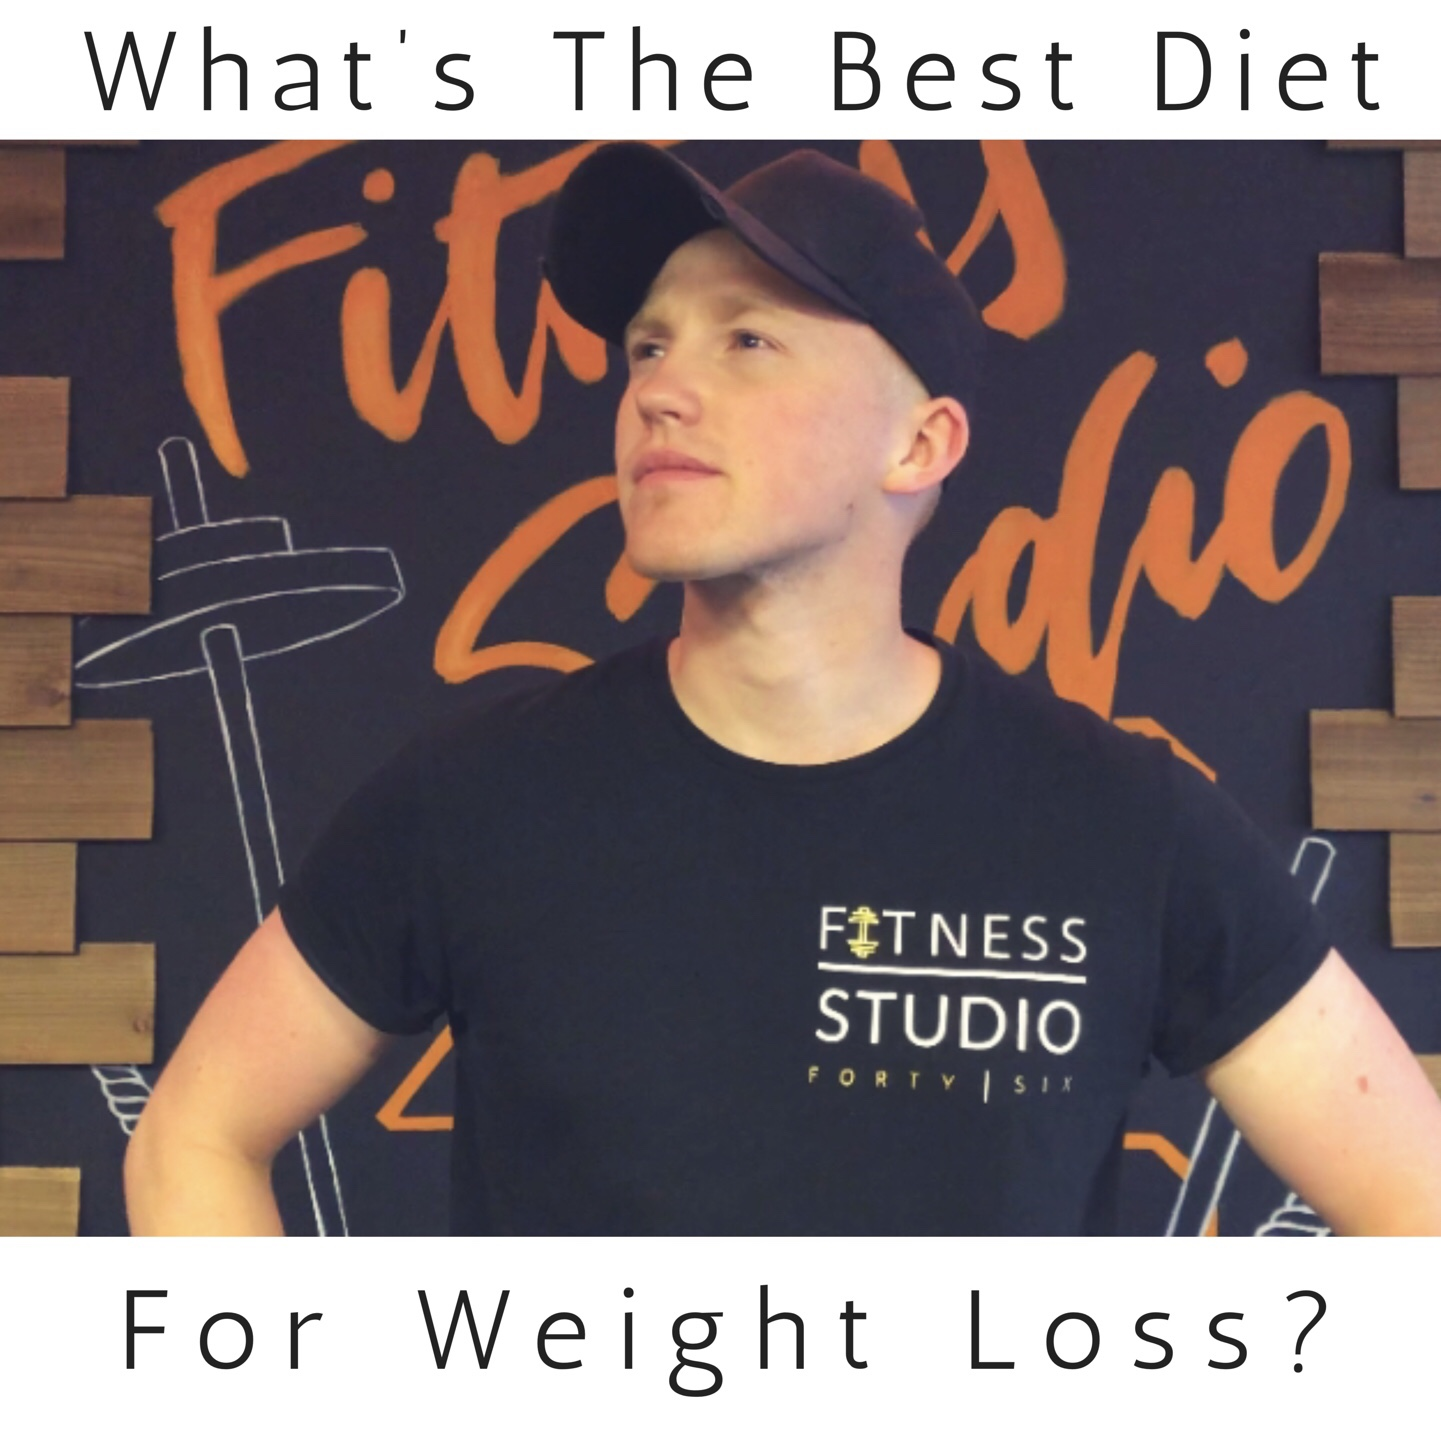 Keto? Low Carb? Low Fat? Intermittent fasting? With  SO MANY  different diets, all claiming to help you achieve weight loss, how can you know what the best diet truly is?!   Read Now